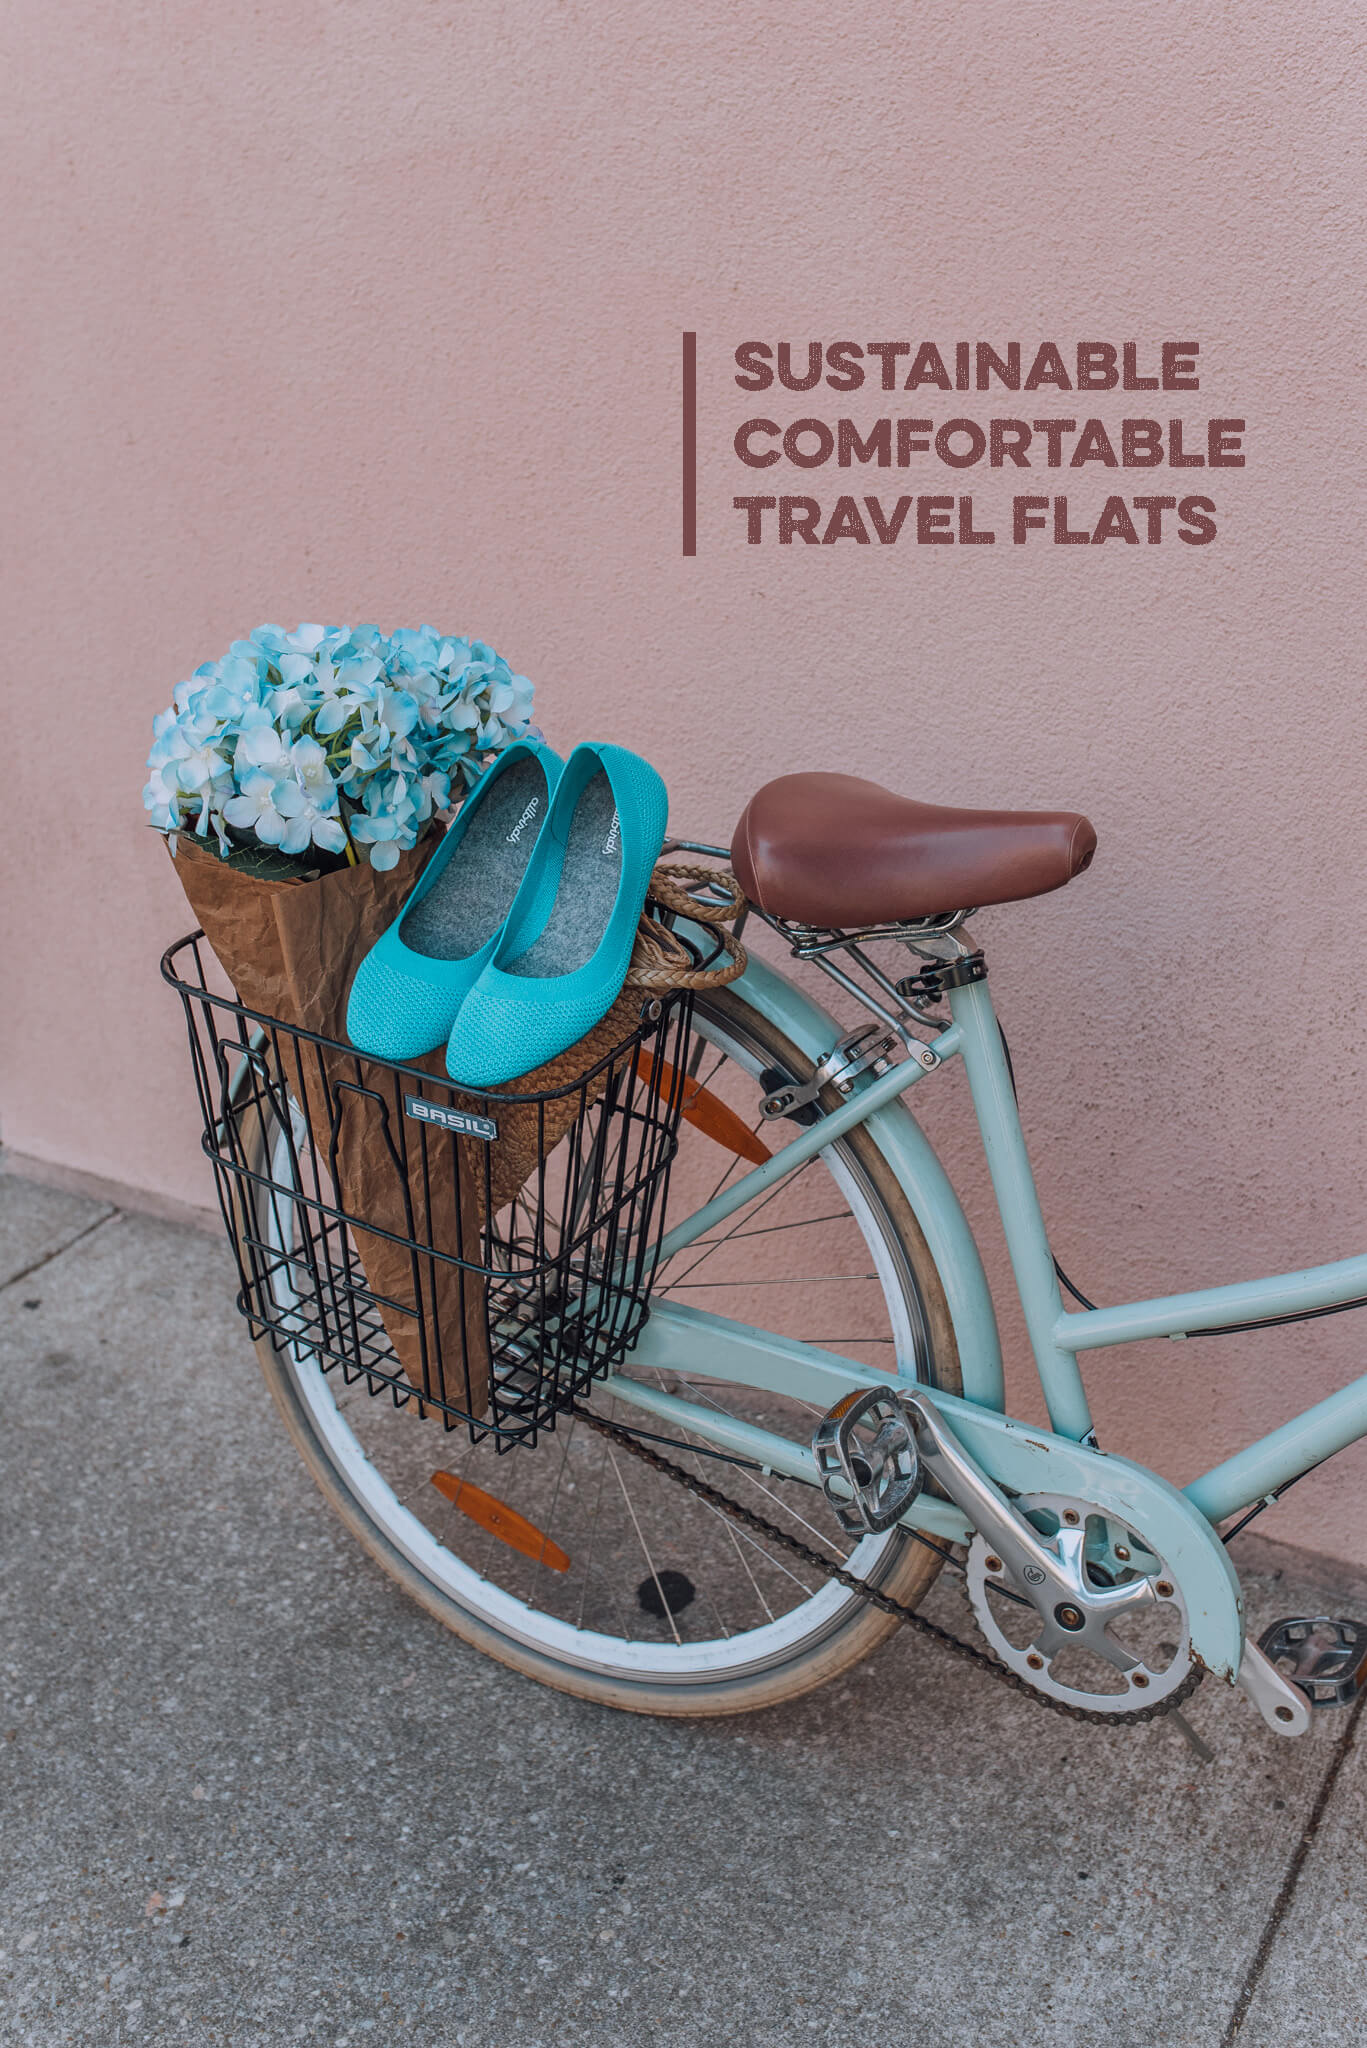 sustainable-comfortable-travel-flats.jpeg